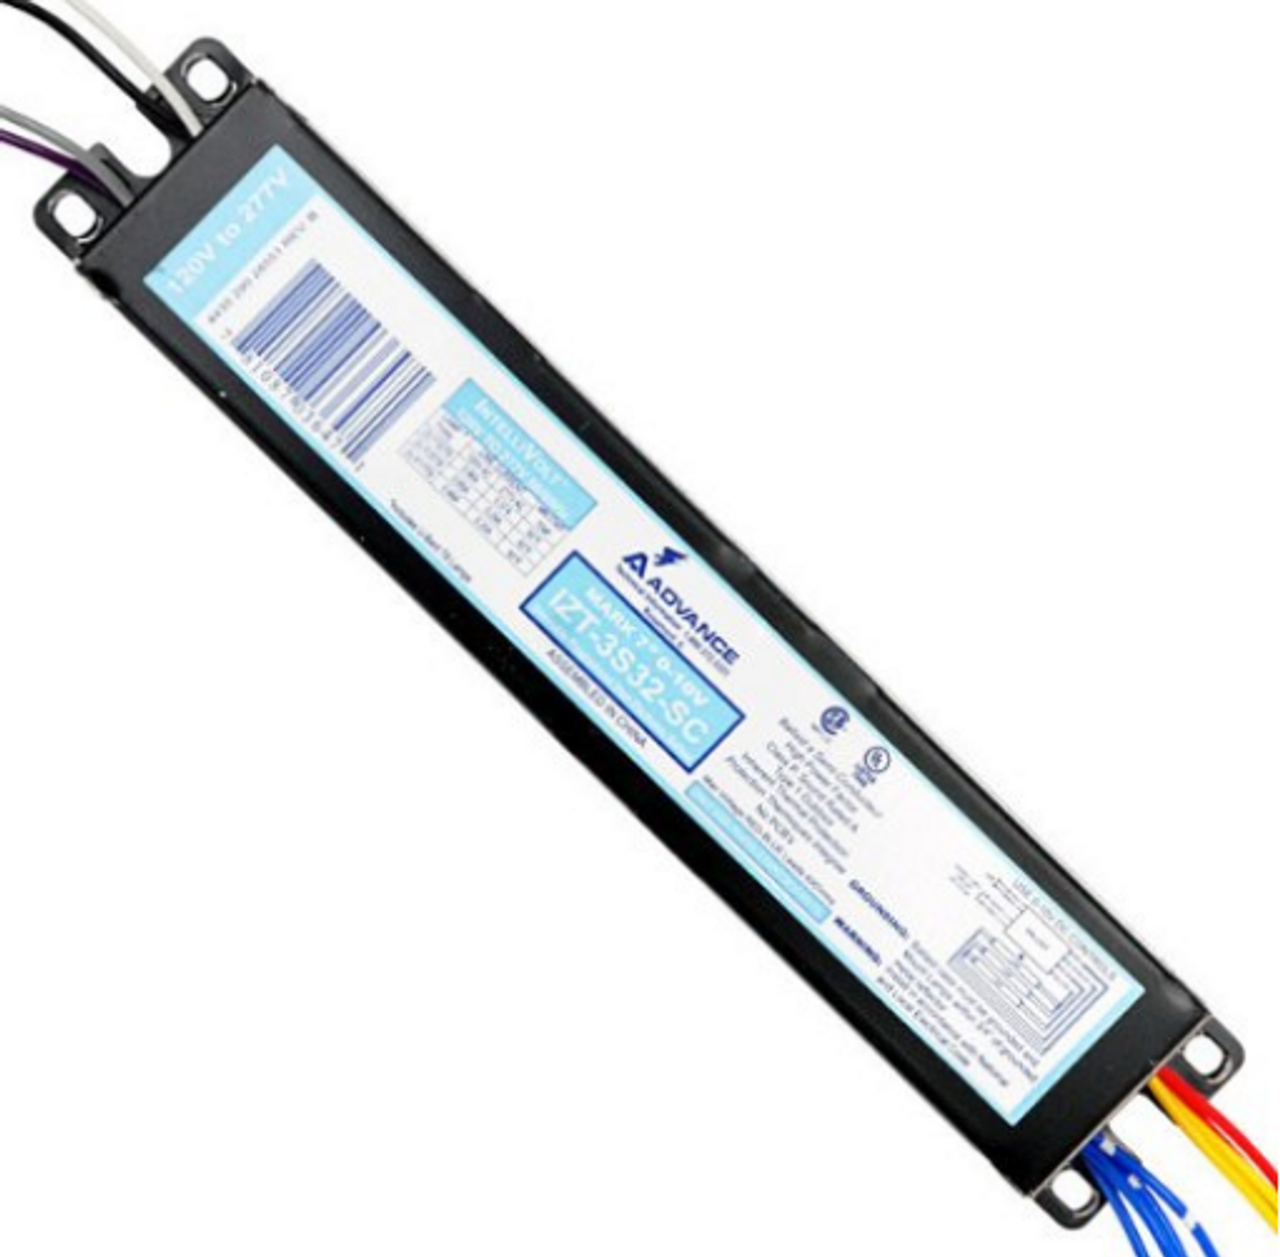 Replacement For Izt-3s32-sc Izt-3s32-scm Electronic Dimming Ballast 3 T8 Lamps Voltage 120//277 Ballast By Technical Precision